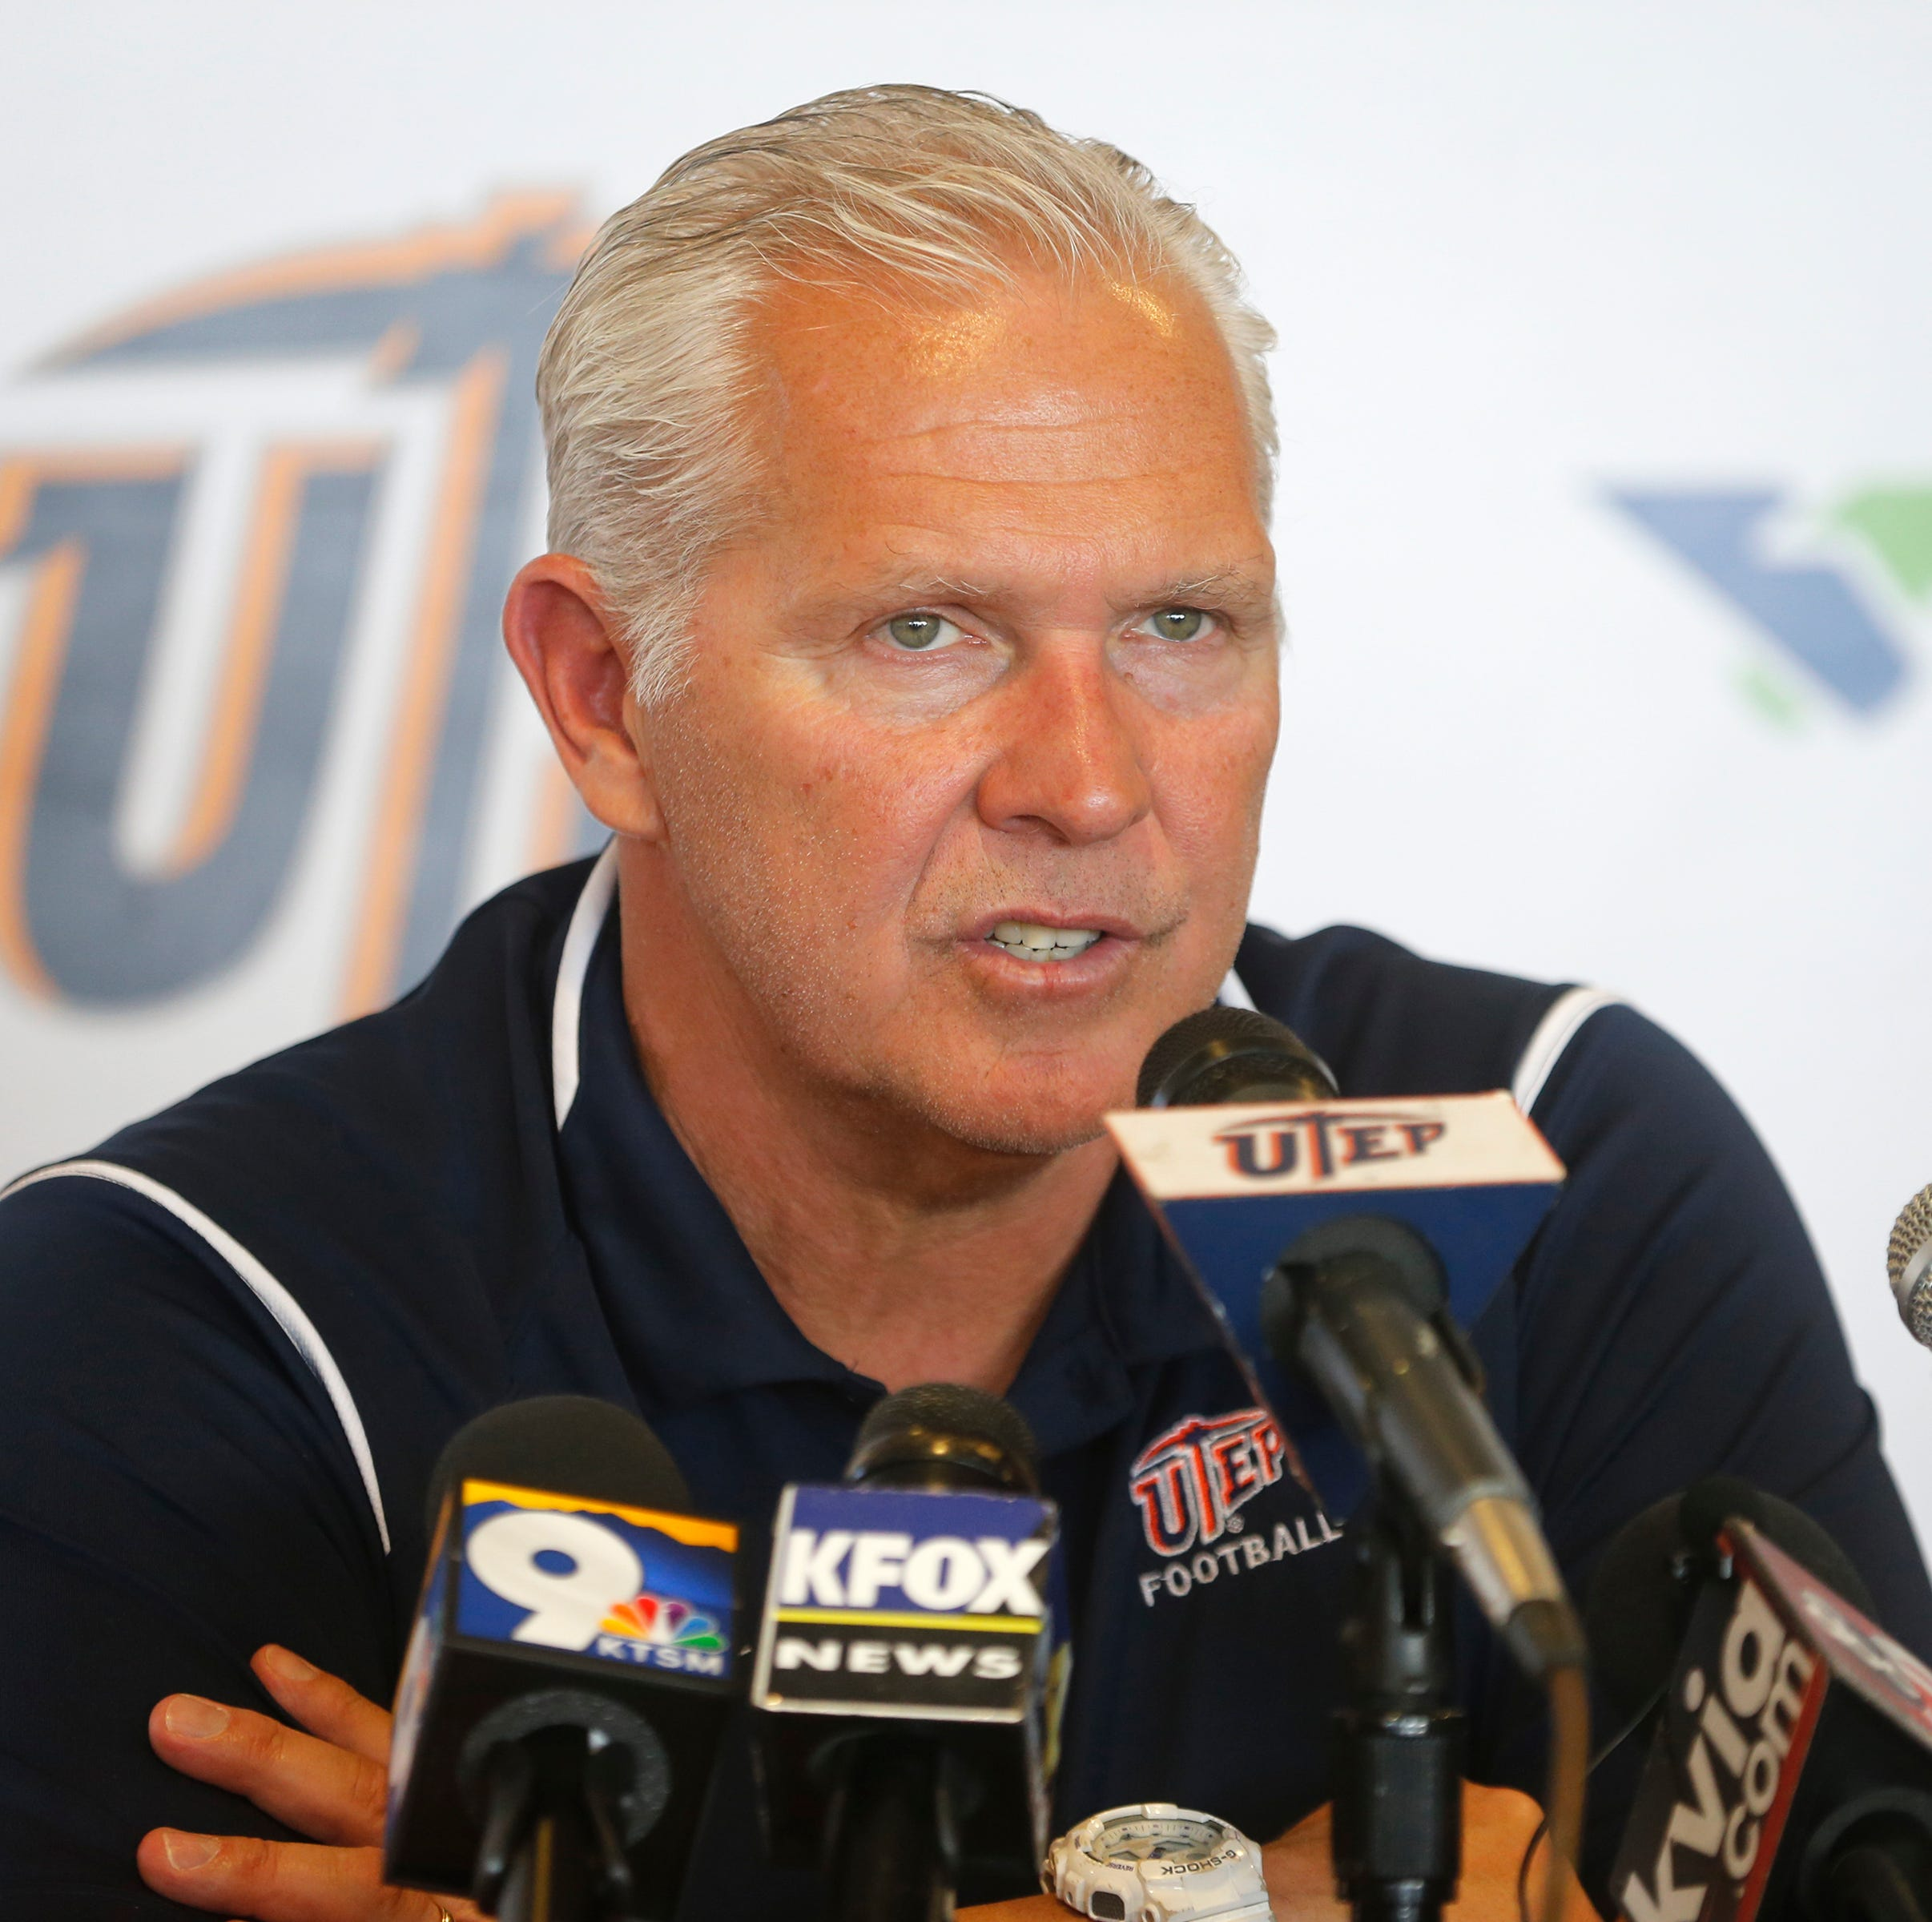 UTEP gears up to face 1-9 Western Kentucky as quarterback questions persist